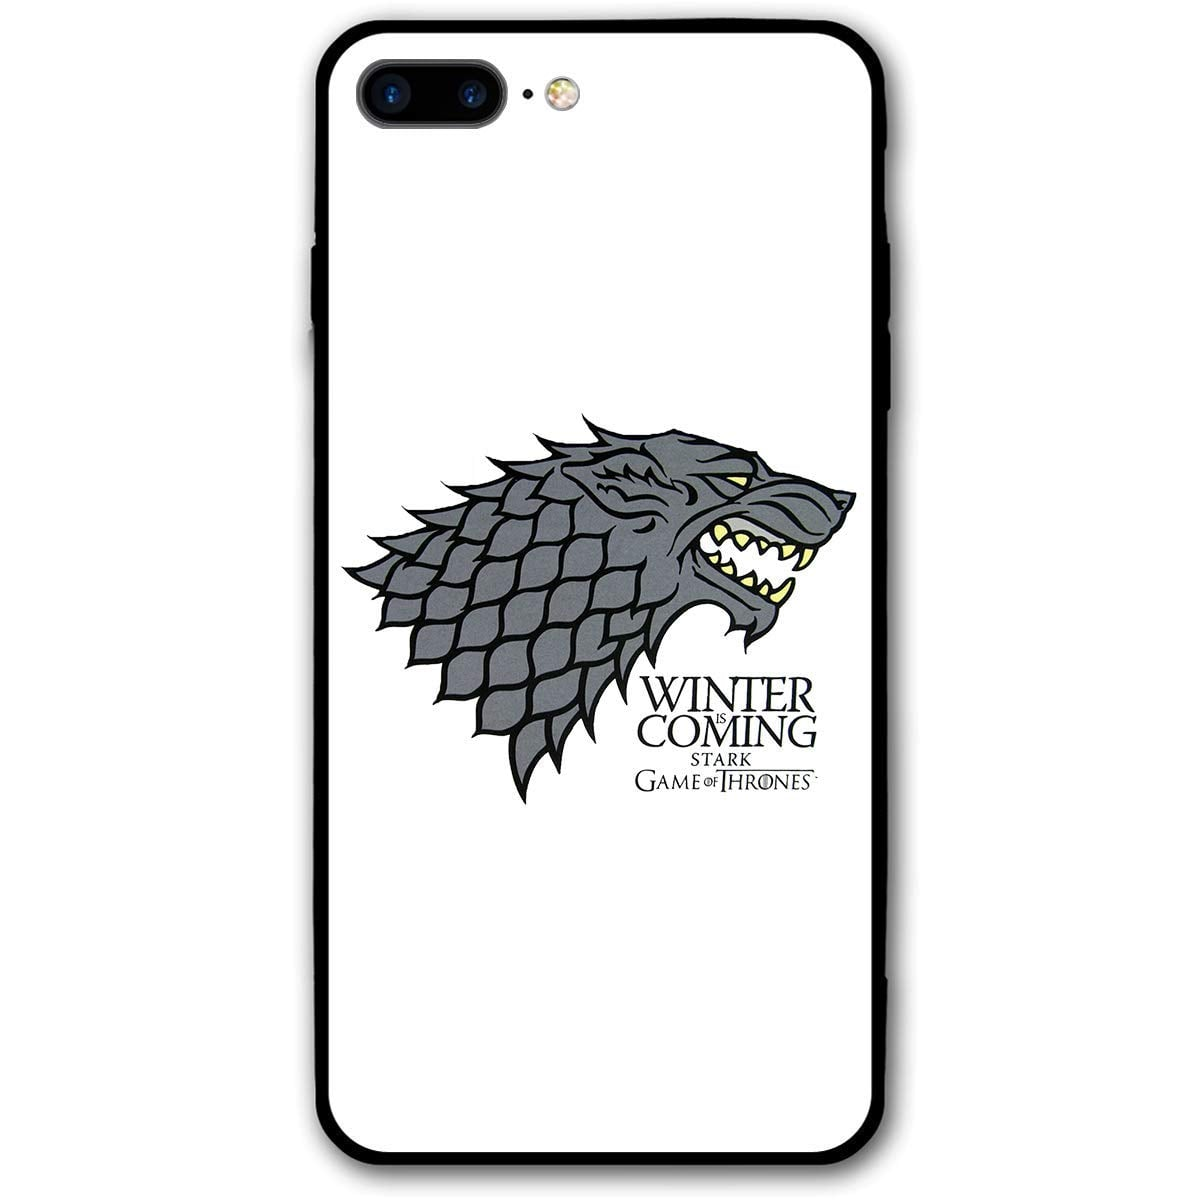 WINTER is COMING START Black Game of Thrones iphone case